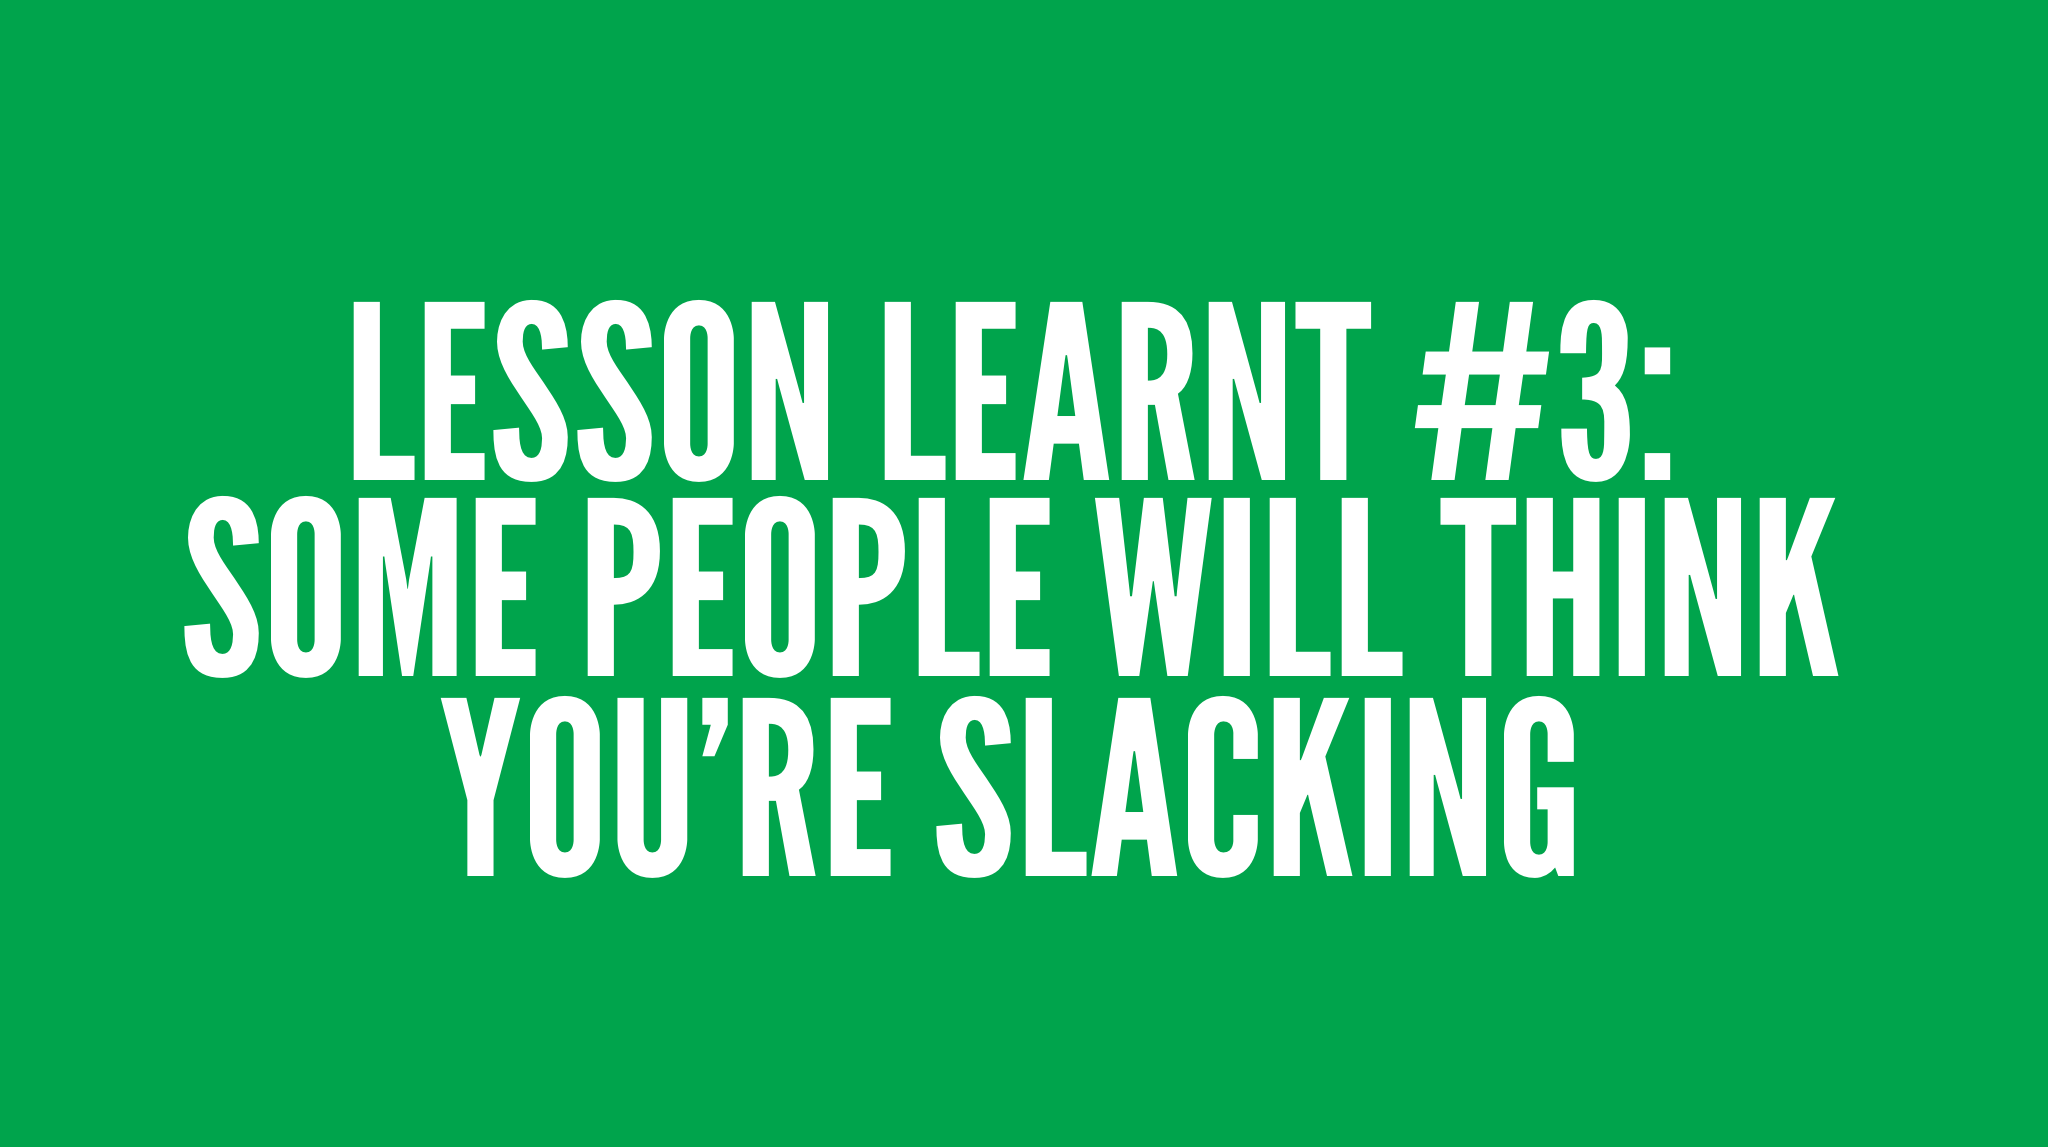 Lesson Learnt #3: Some people will think you're slacking. You need to be ok with that.